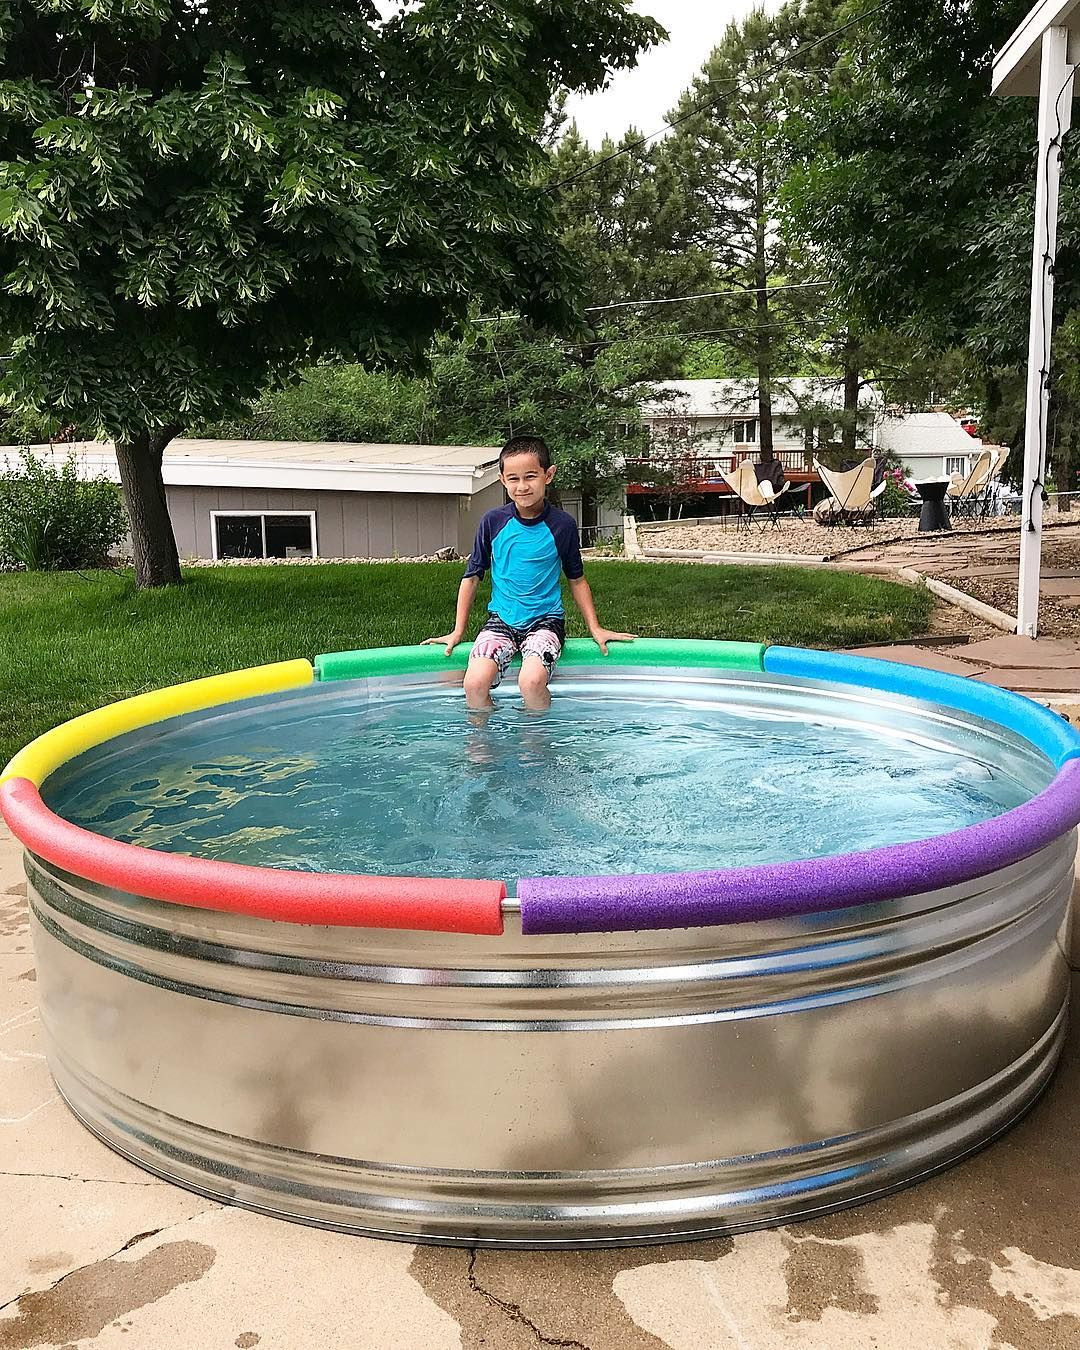 47 Cheap And Easy Backyard And Garden Upgrades That Are Pure Genius In 2020 Stock Tank Pool Diy Stock Tank Pool Stock Tank Swimming Pool